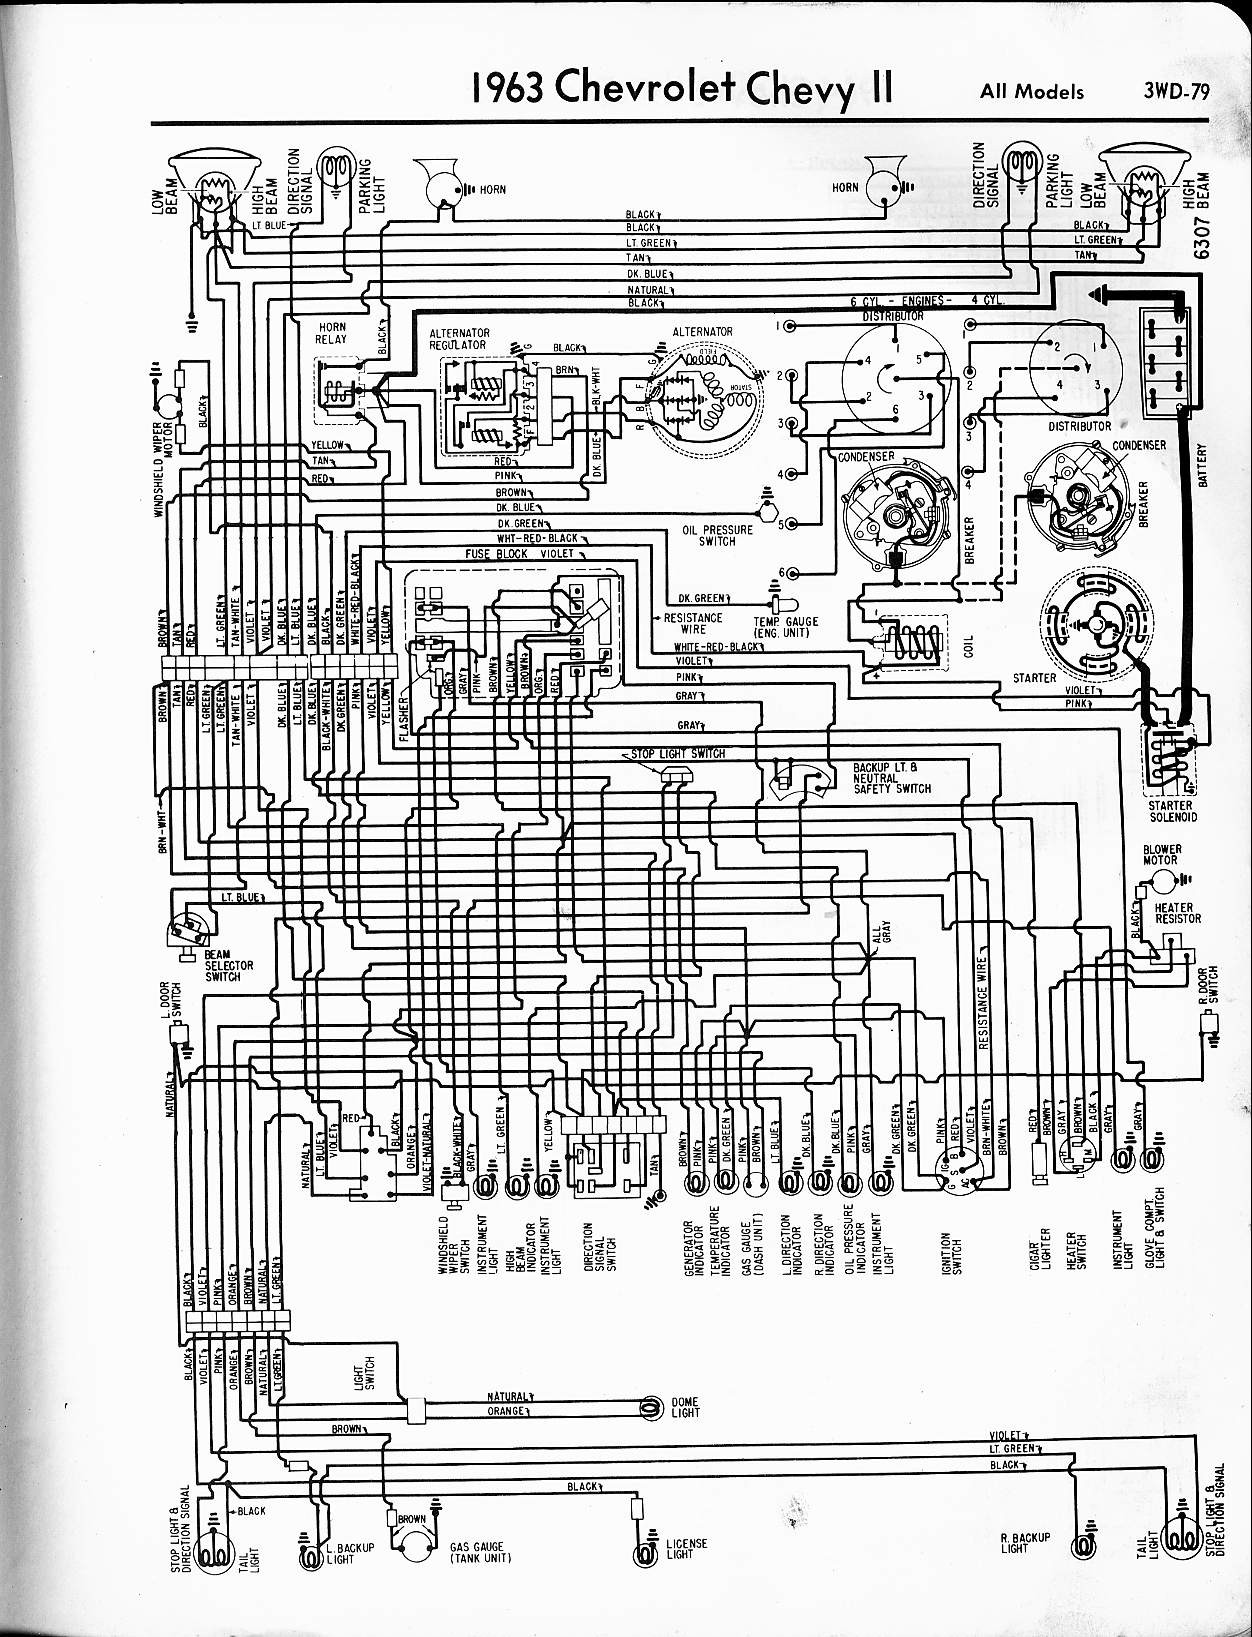 1966 chevy nova wiring diagram schematics wiring diagrams u2022 rh  seniorlivinguniversity co 1968 Camaro Wiring Harness Diagram 1966 Impala Wiring  Diagram